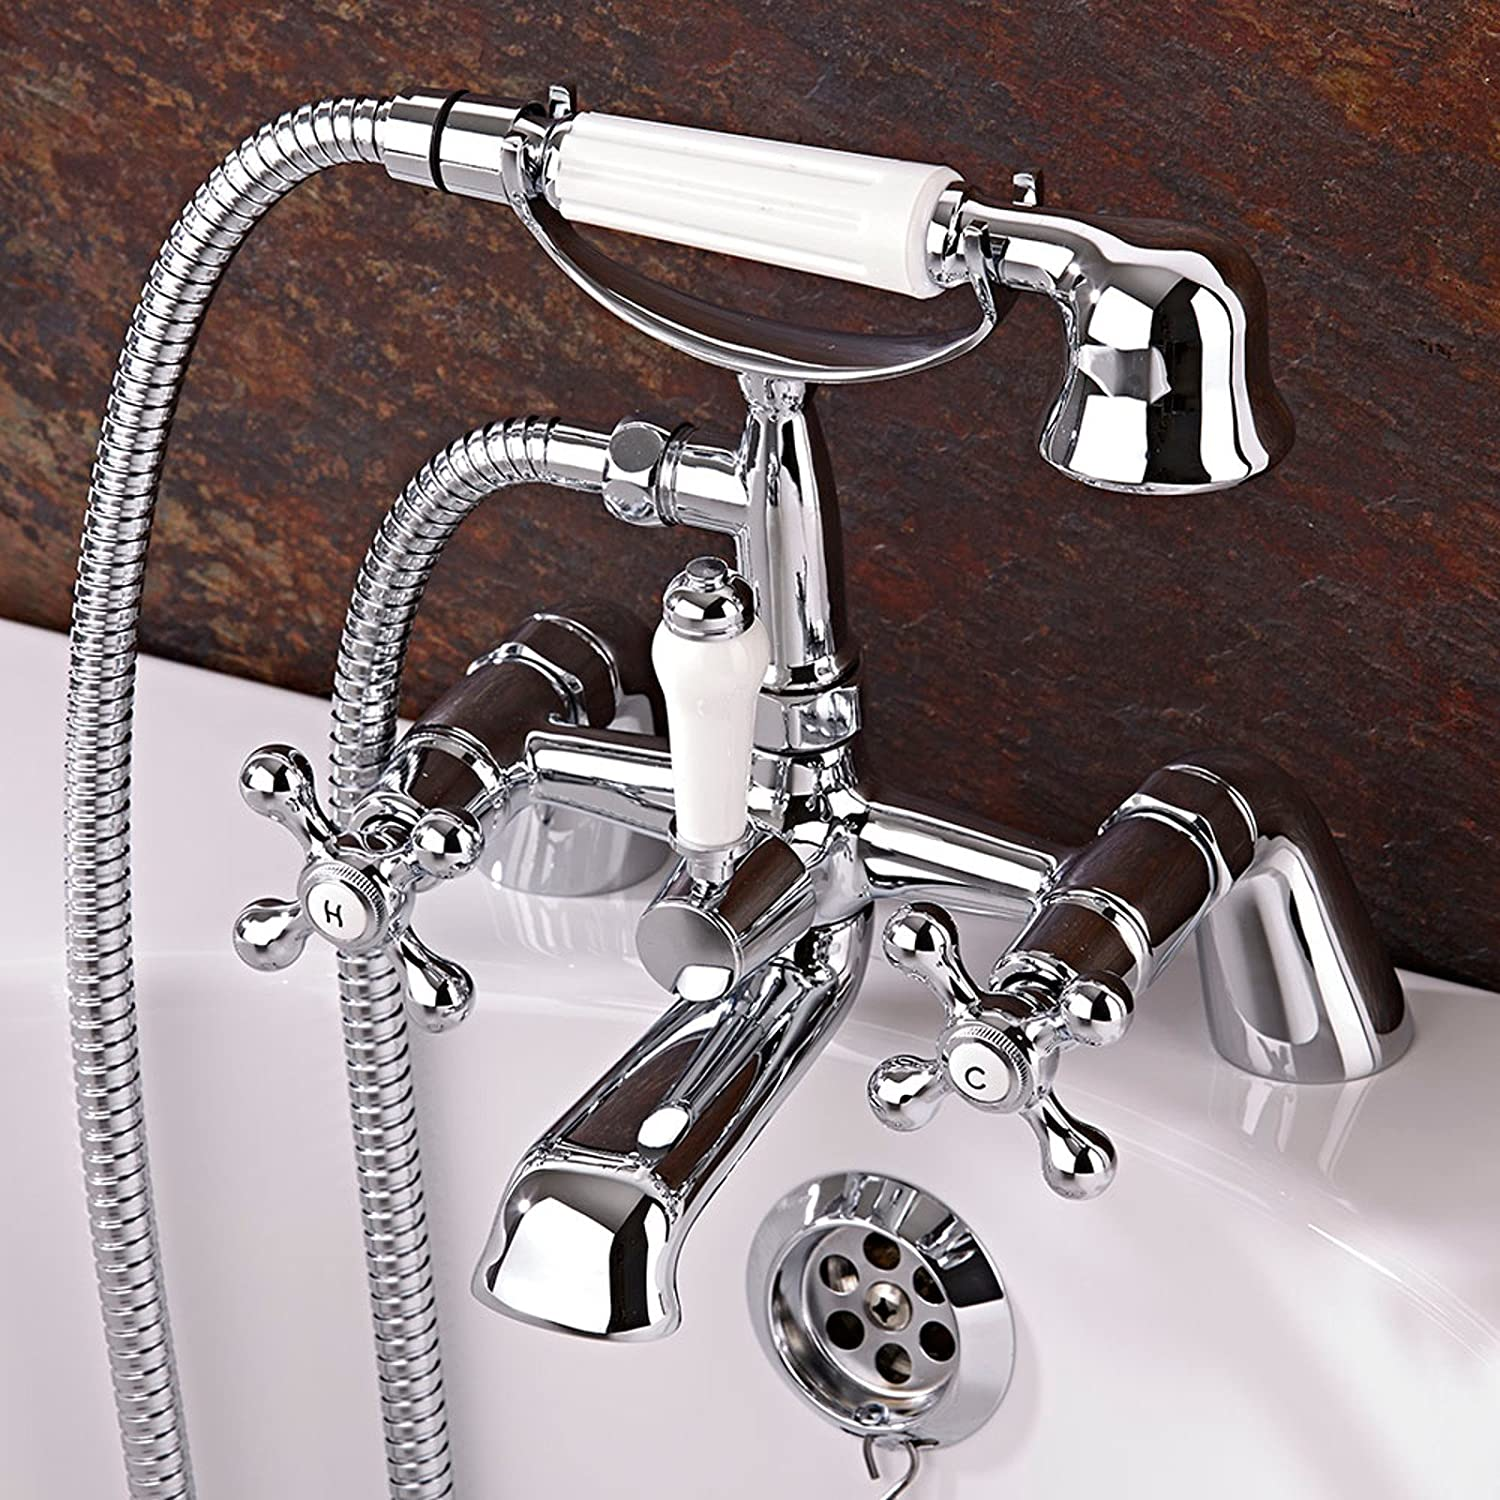 enki traditional cross handle bath filler mixer taps shower enki traditional cross handle bath filler mixer taps shower bathroom chrome windsor amazon co uk diy tools